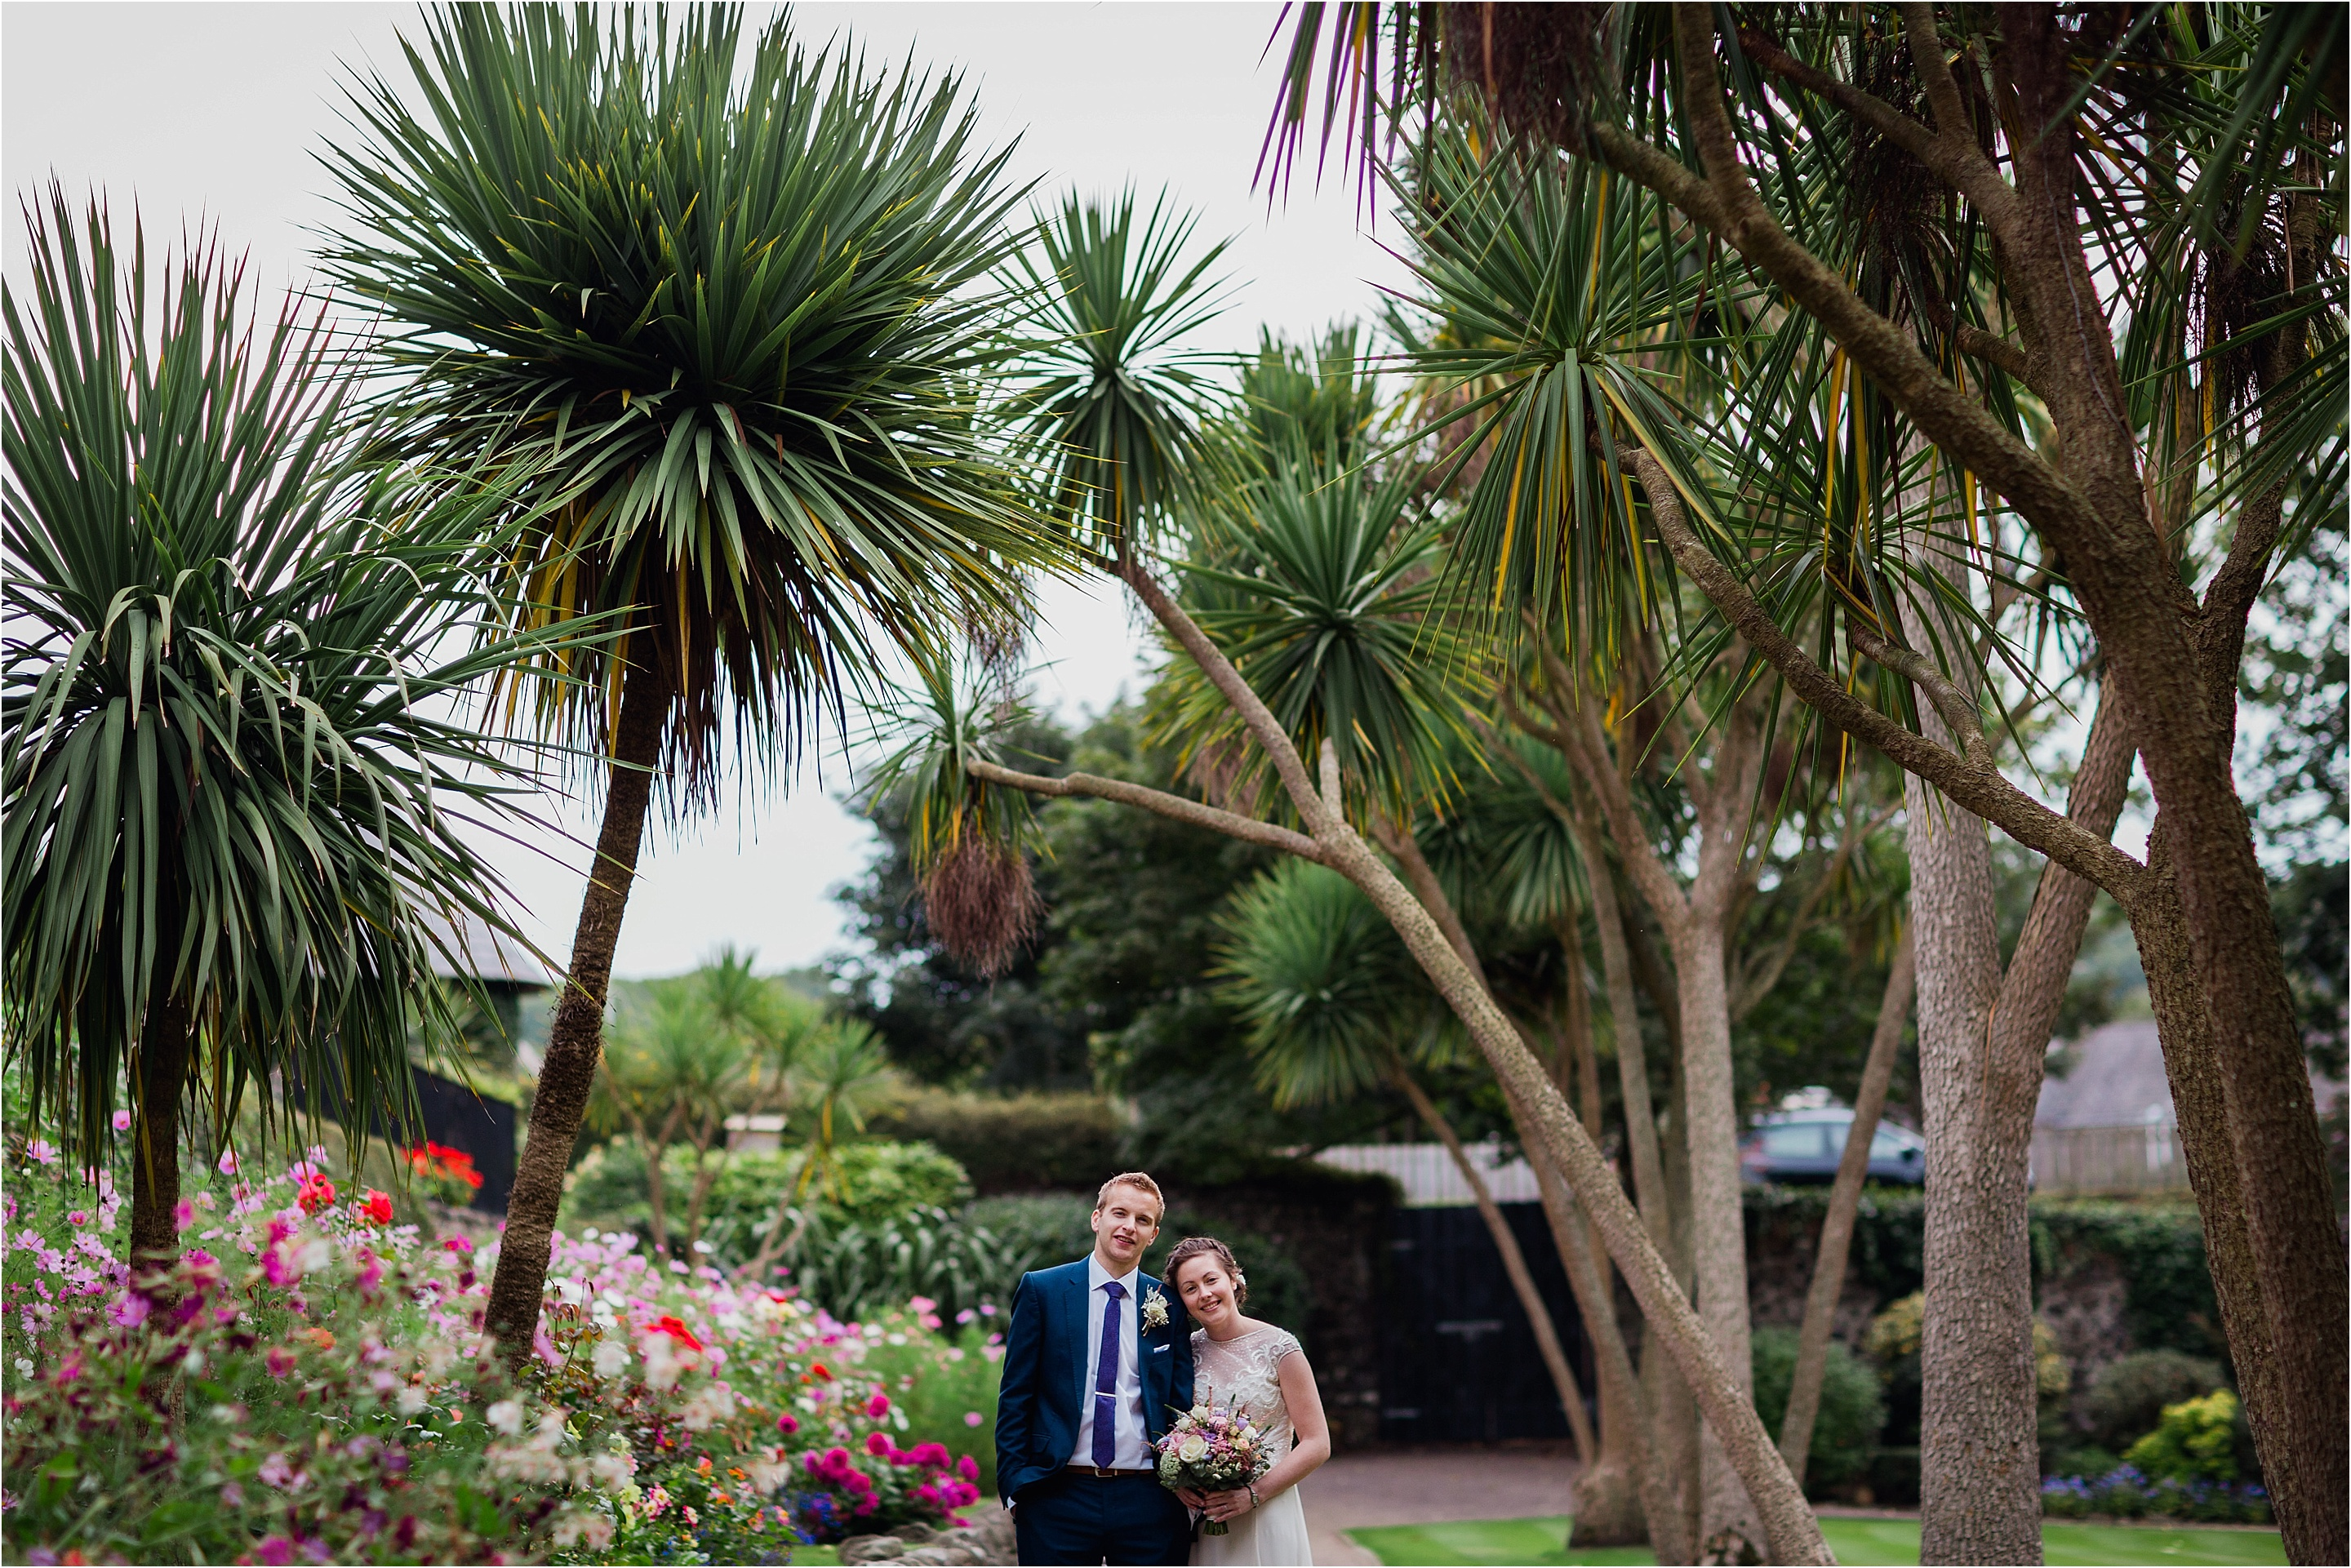 bride and groom under palm trees portrait